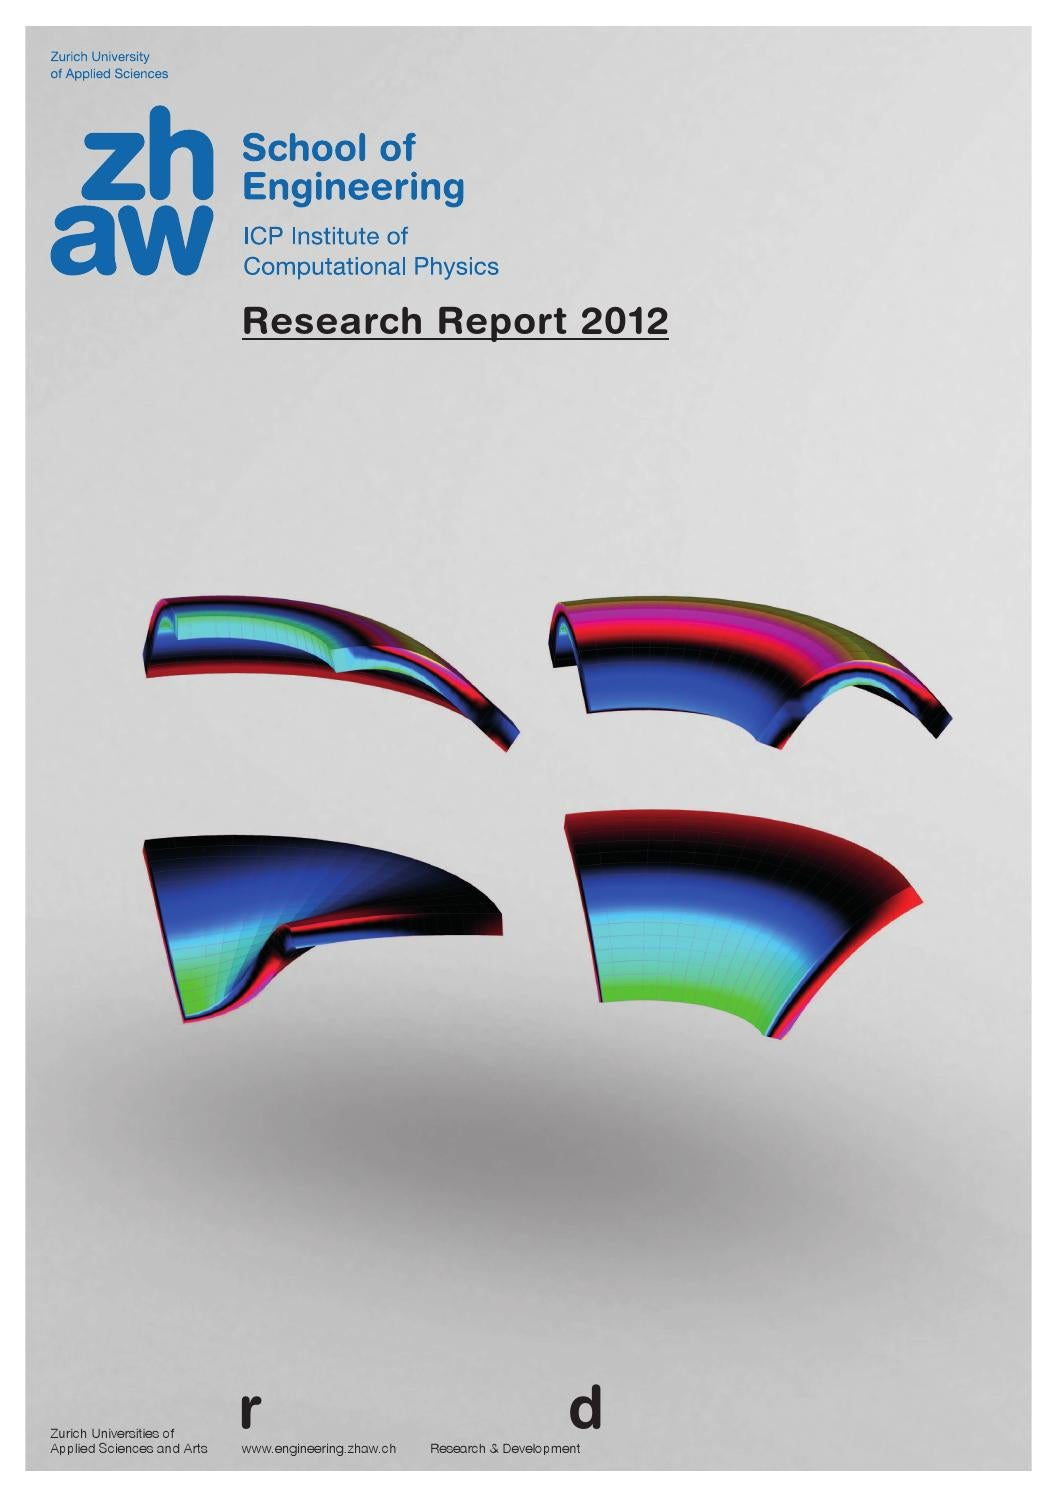 Zhaw Icp Research Report 2012 By Zhaw School Of Engineering Issuu